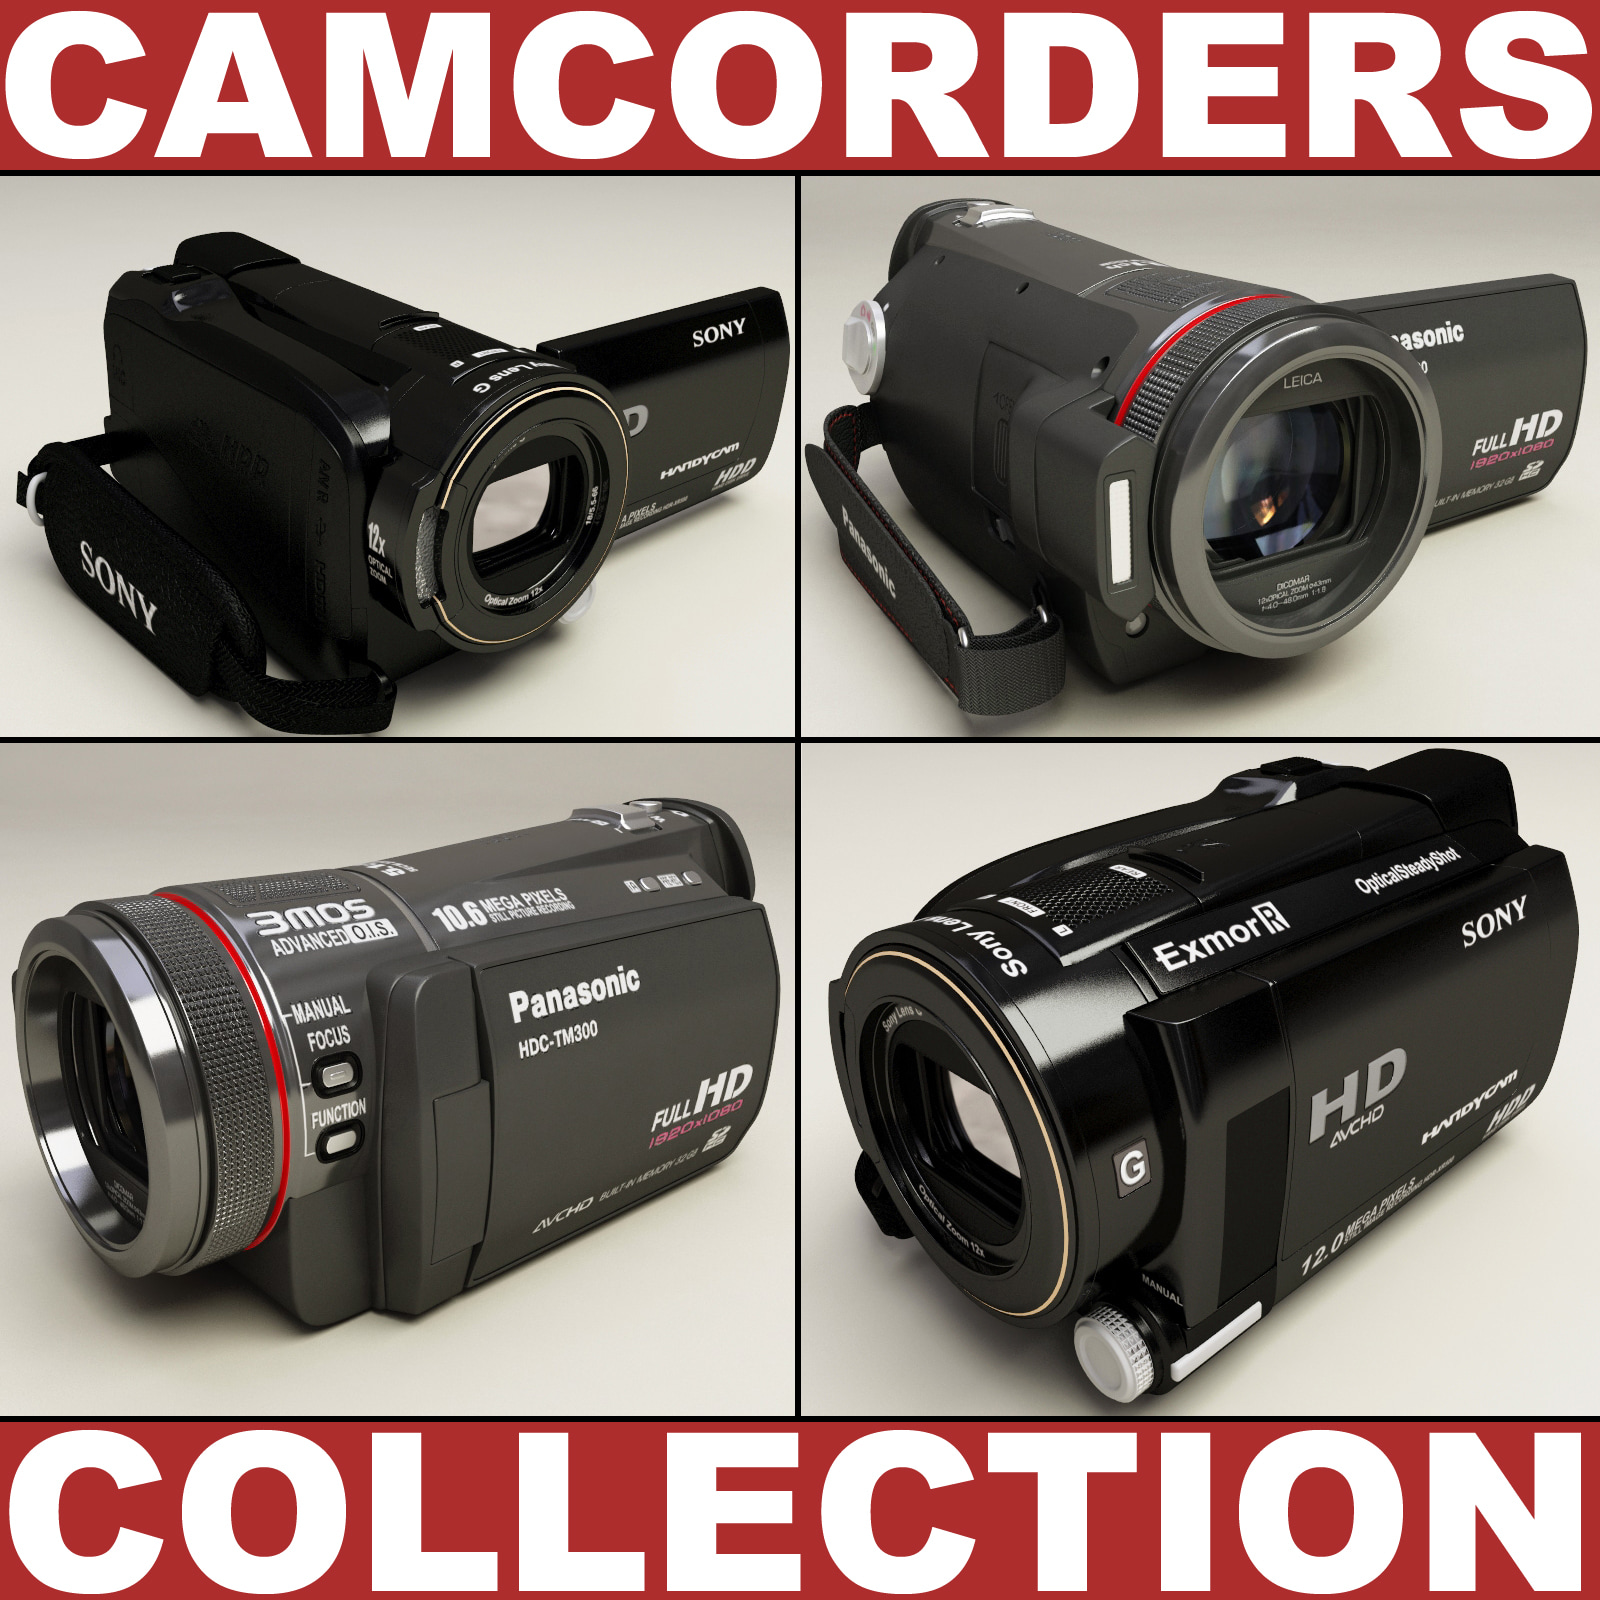 Camcorders_Collection_00.jpg